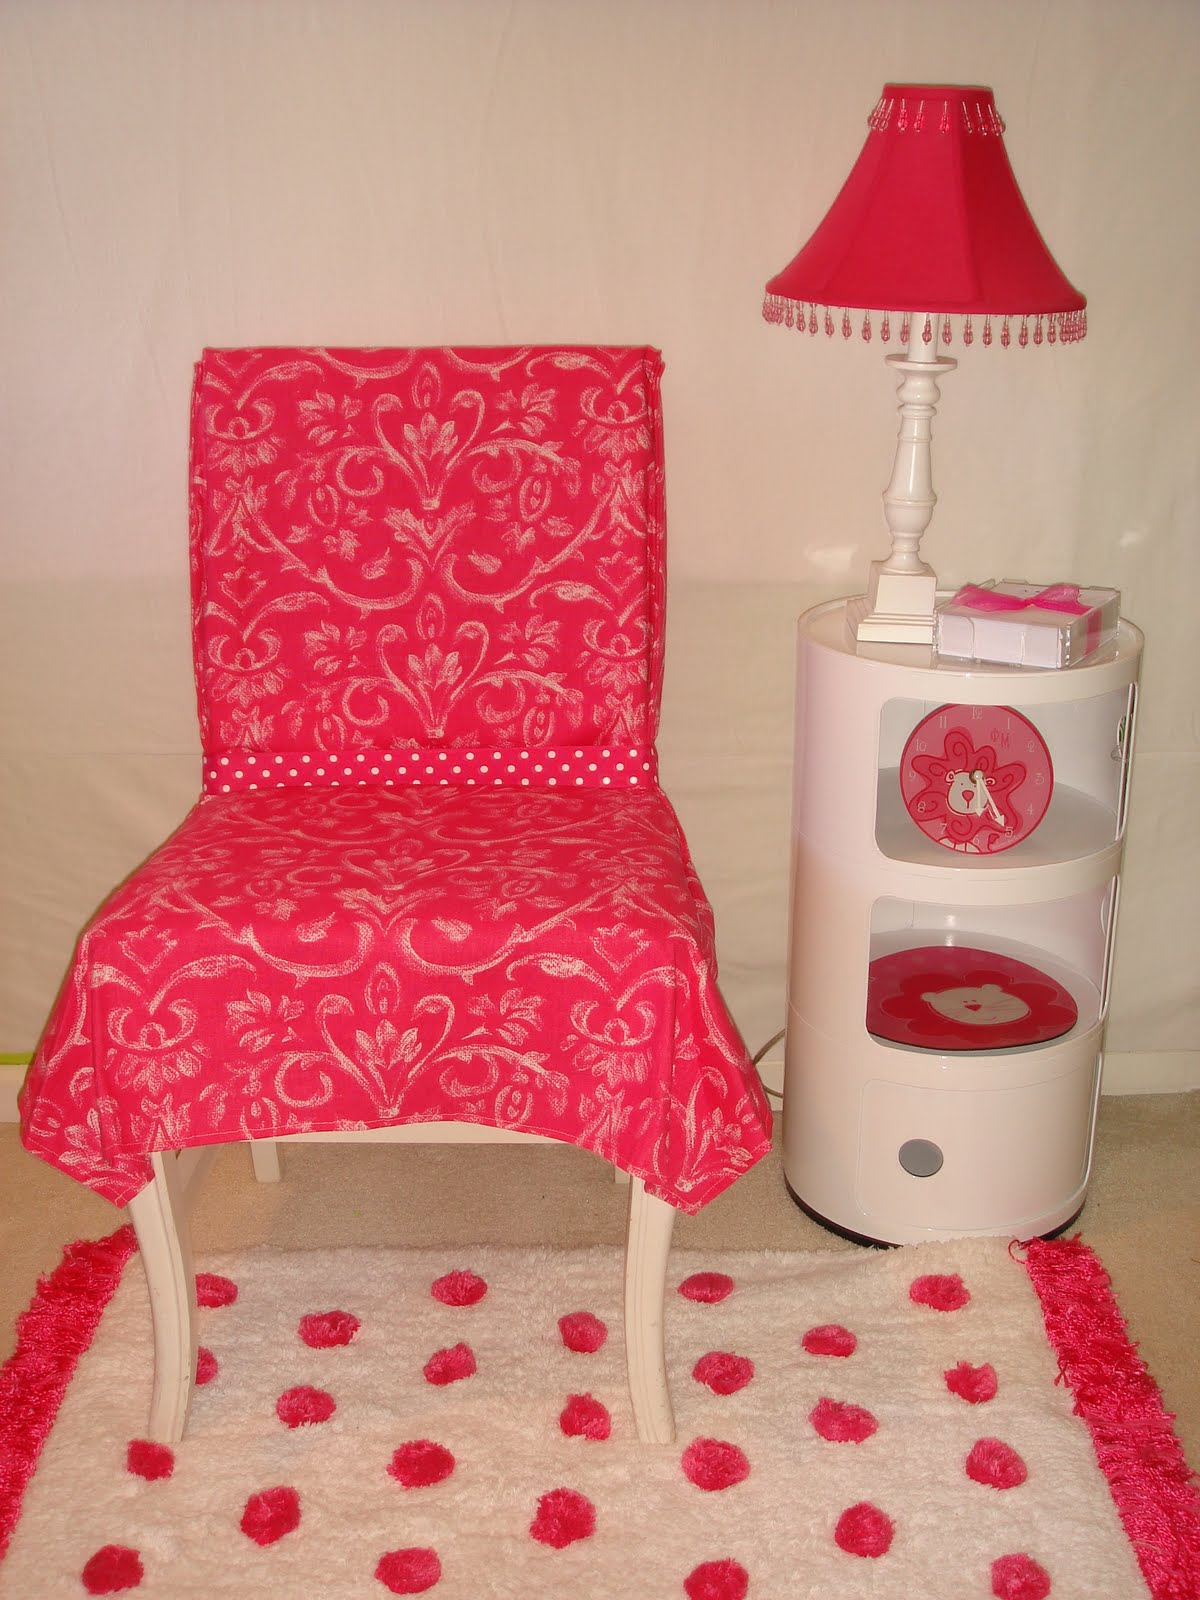 Dorm desk chairs - Chair Slipcovers For Dorm Desk Chairs